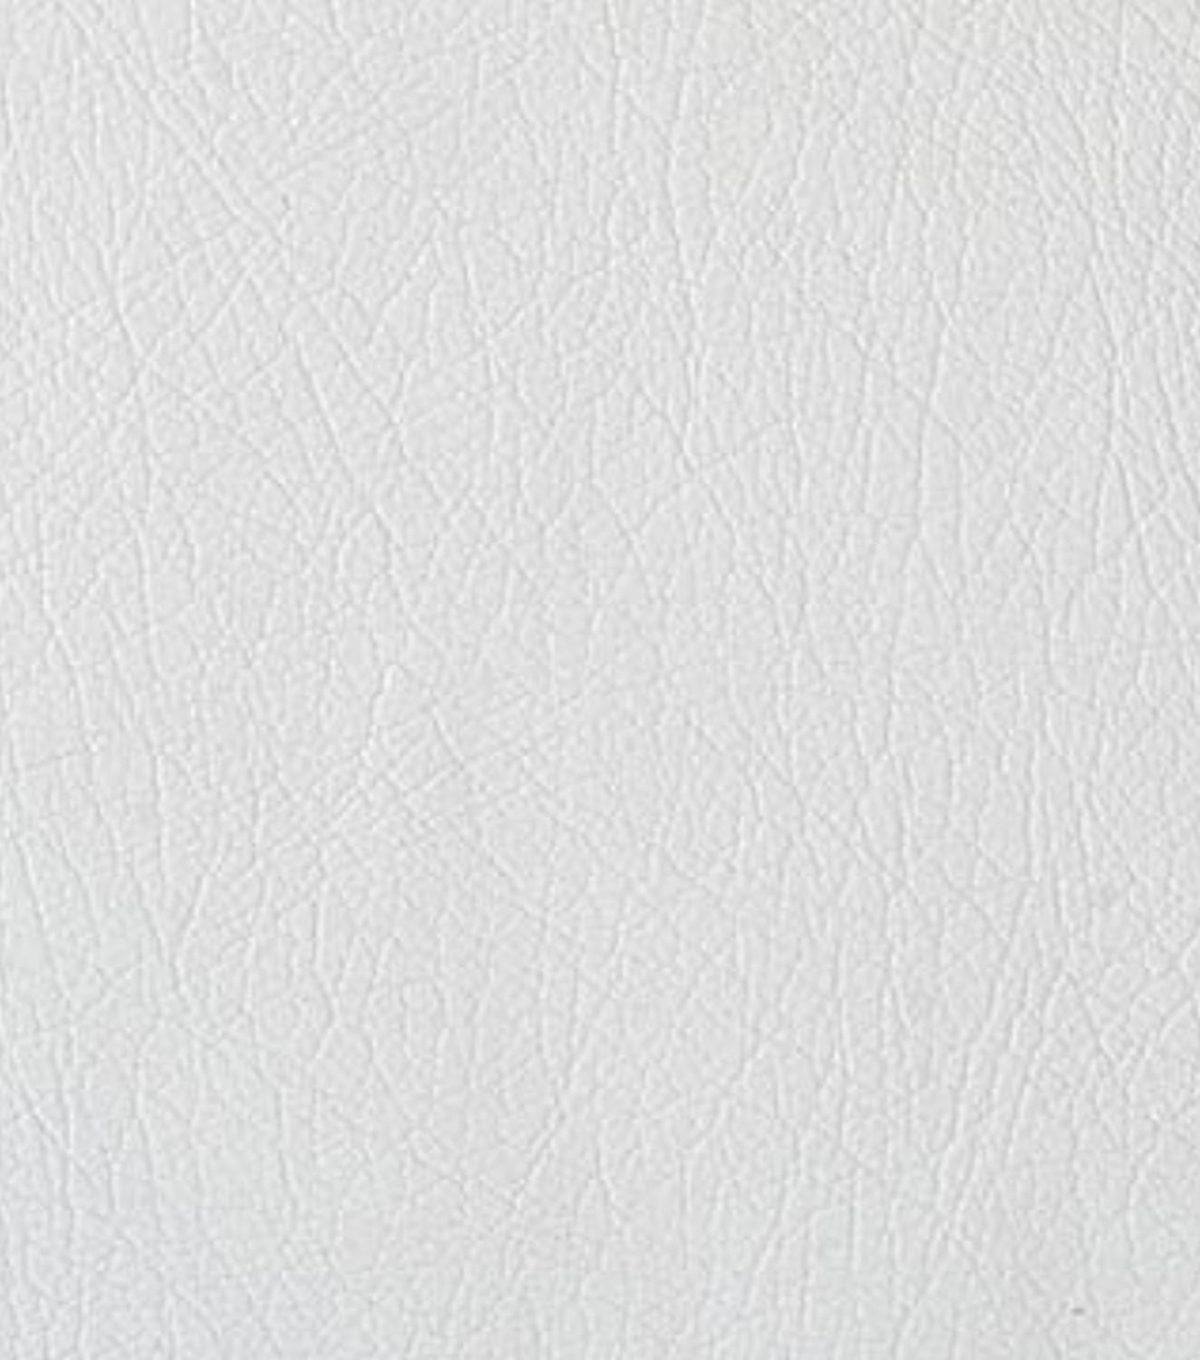 Home Decor 8\u0022x8\u0022 Fabric Swatch-Signature Series Lexi White